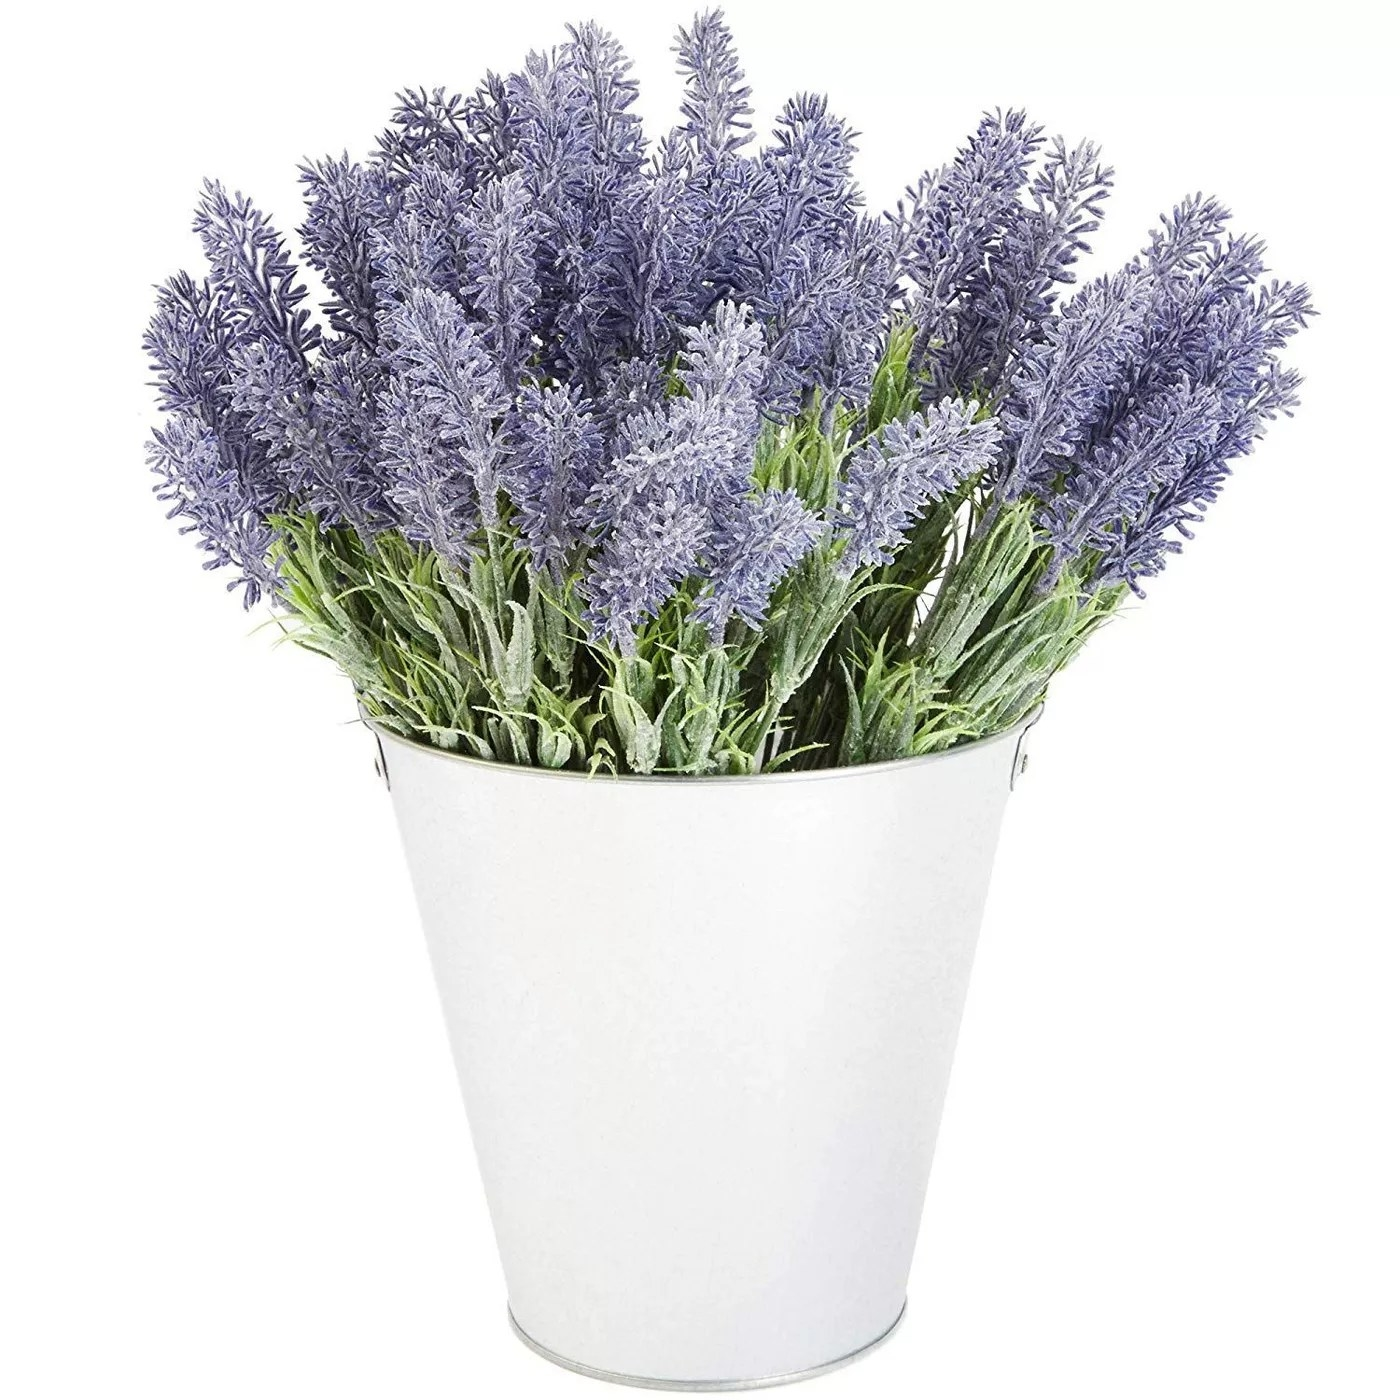 The artificial lavender flowers